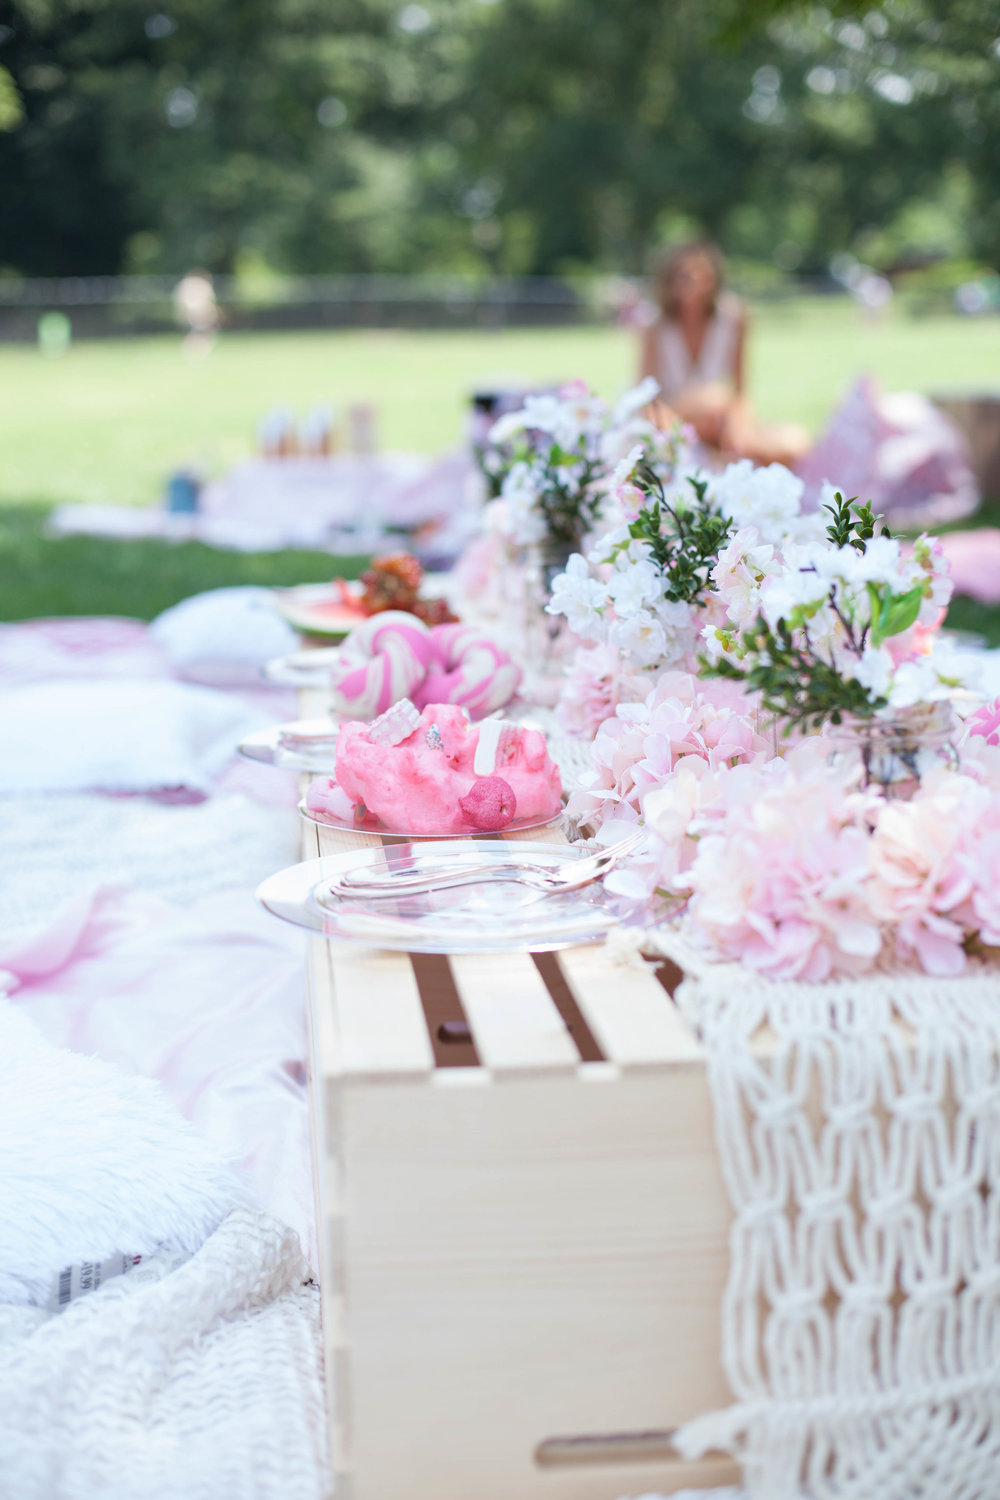 Summer Picnic Ideas NYC